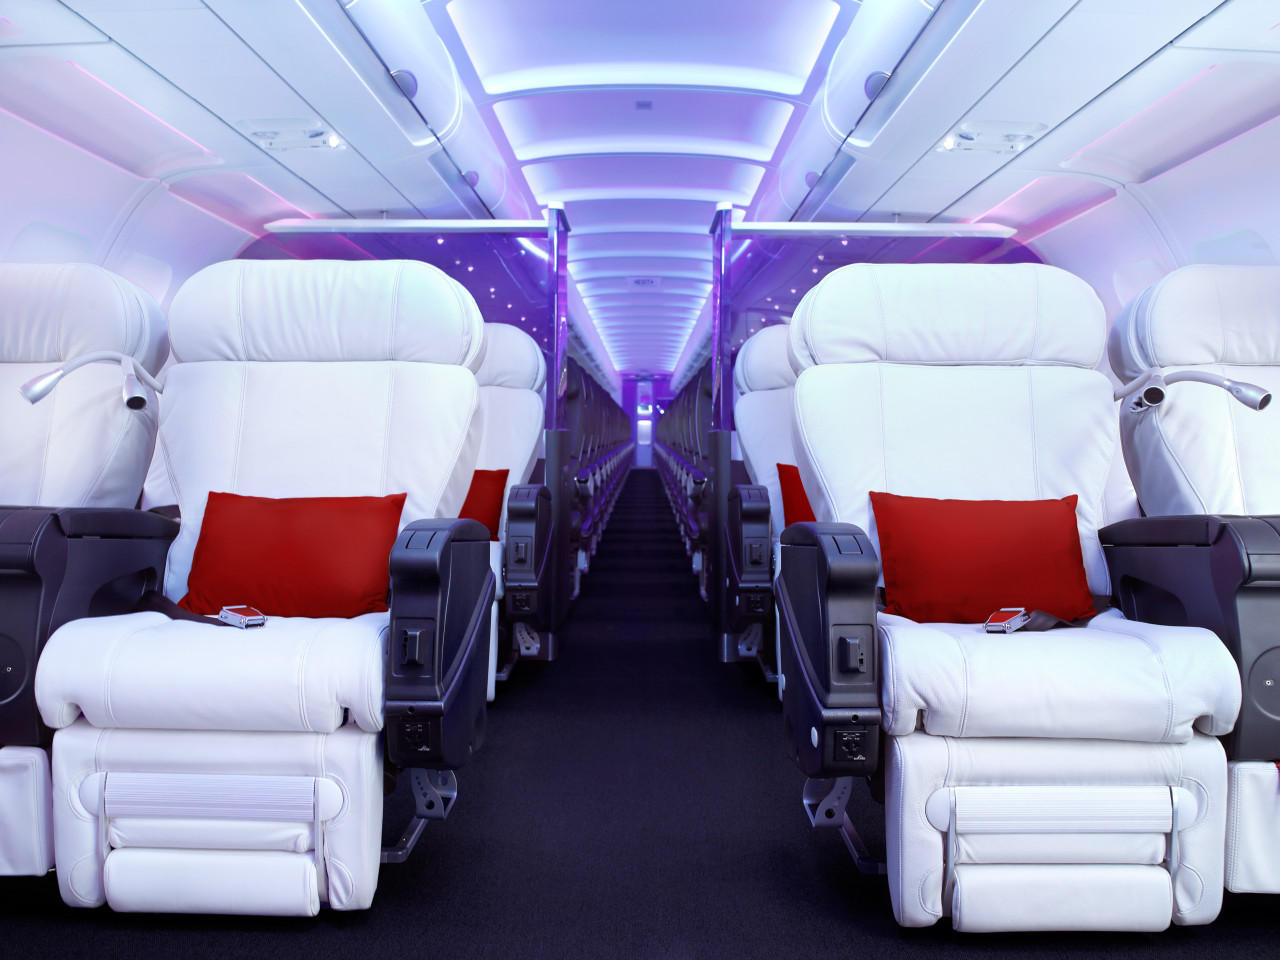 Start Your Winter Escape In Style on Virgin's Non-Stop Service from NYC to PSP